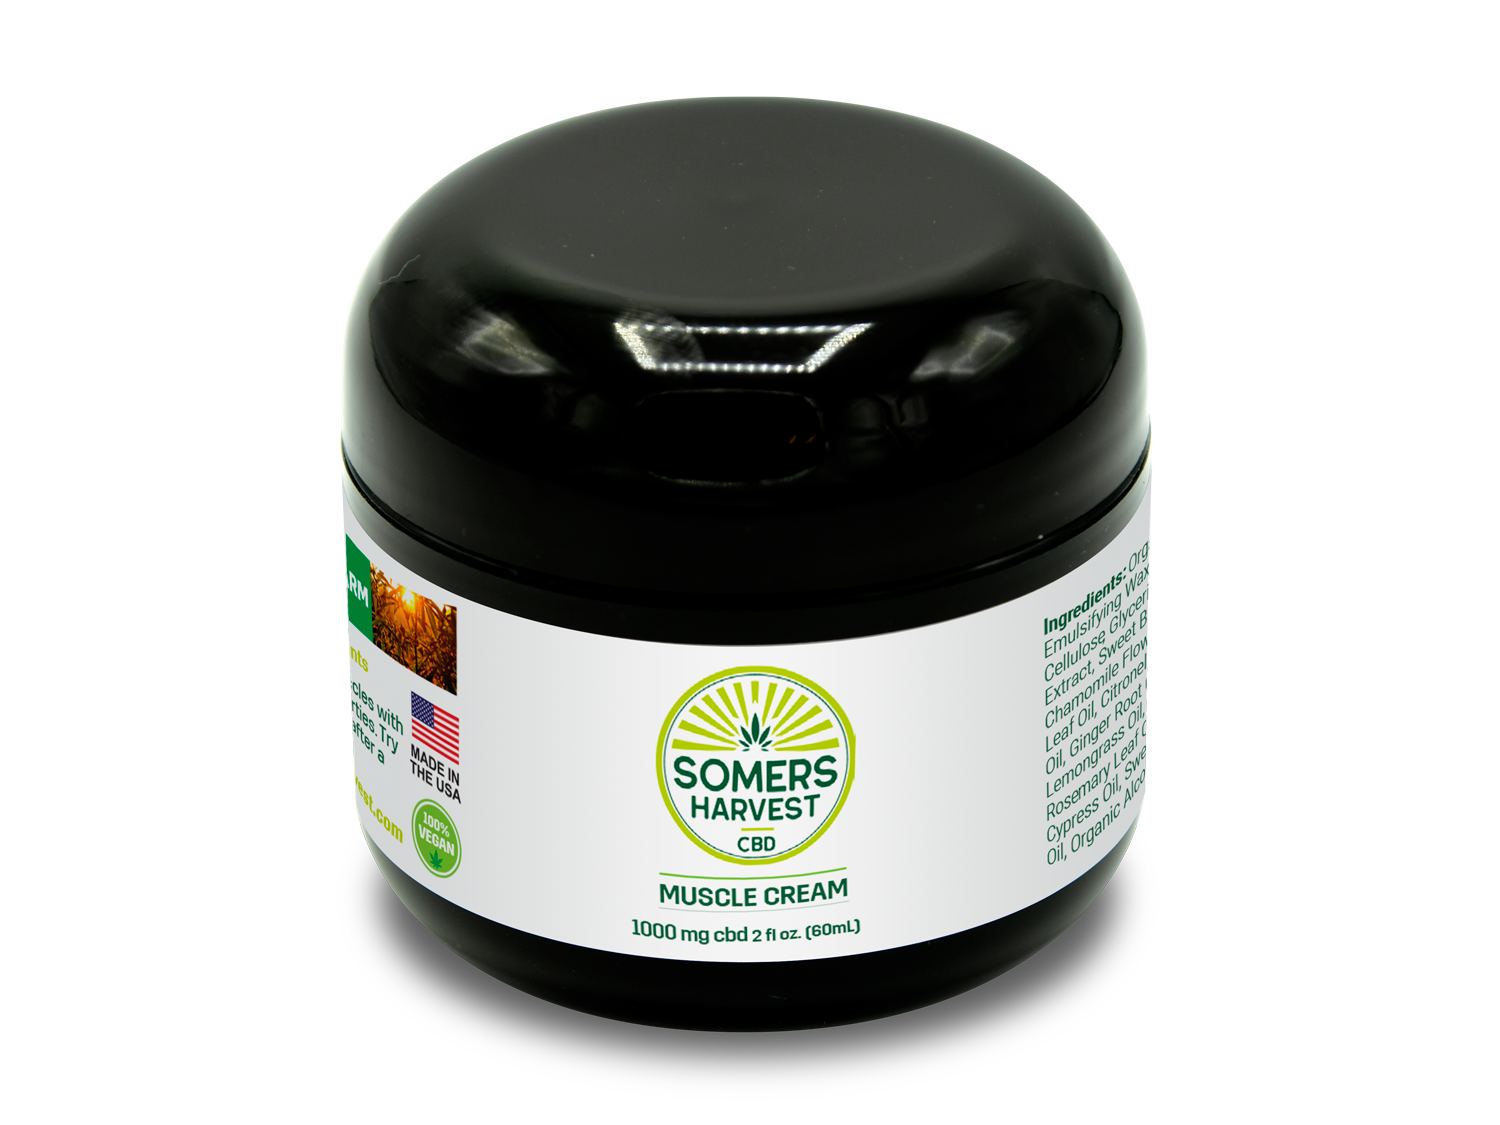 Somers Harvest CBD Muscle Cream